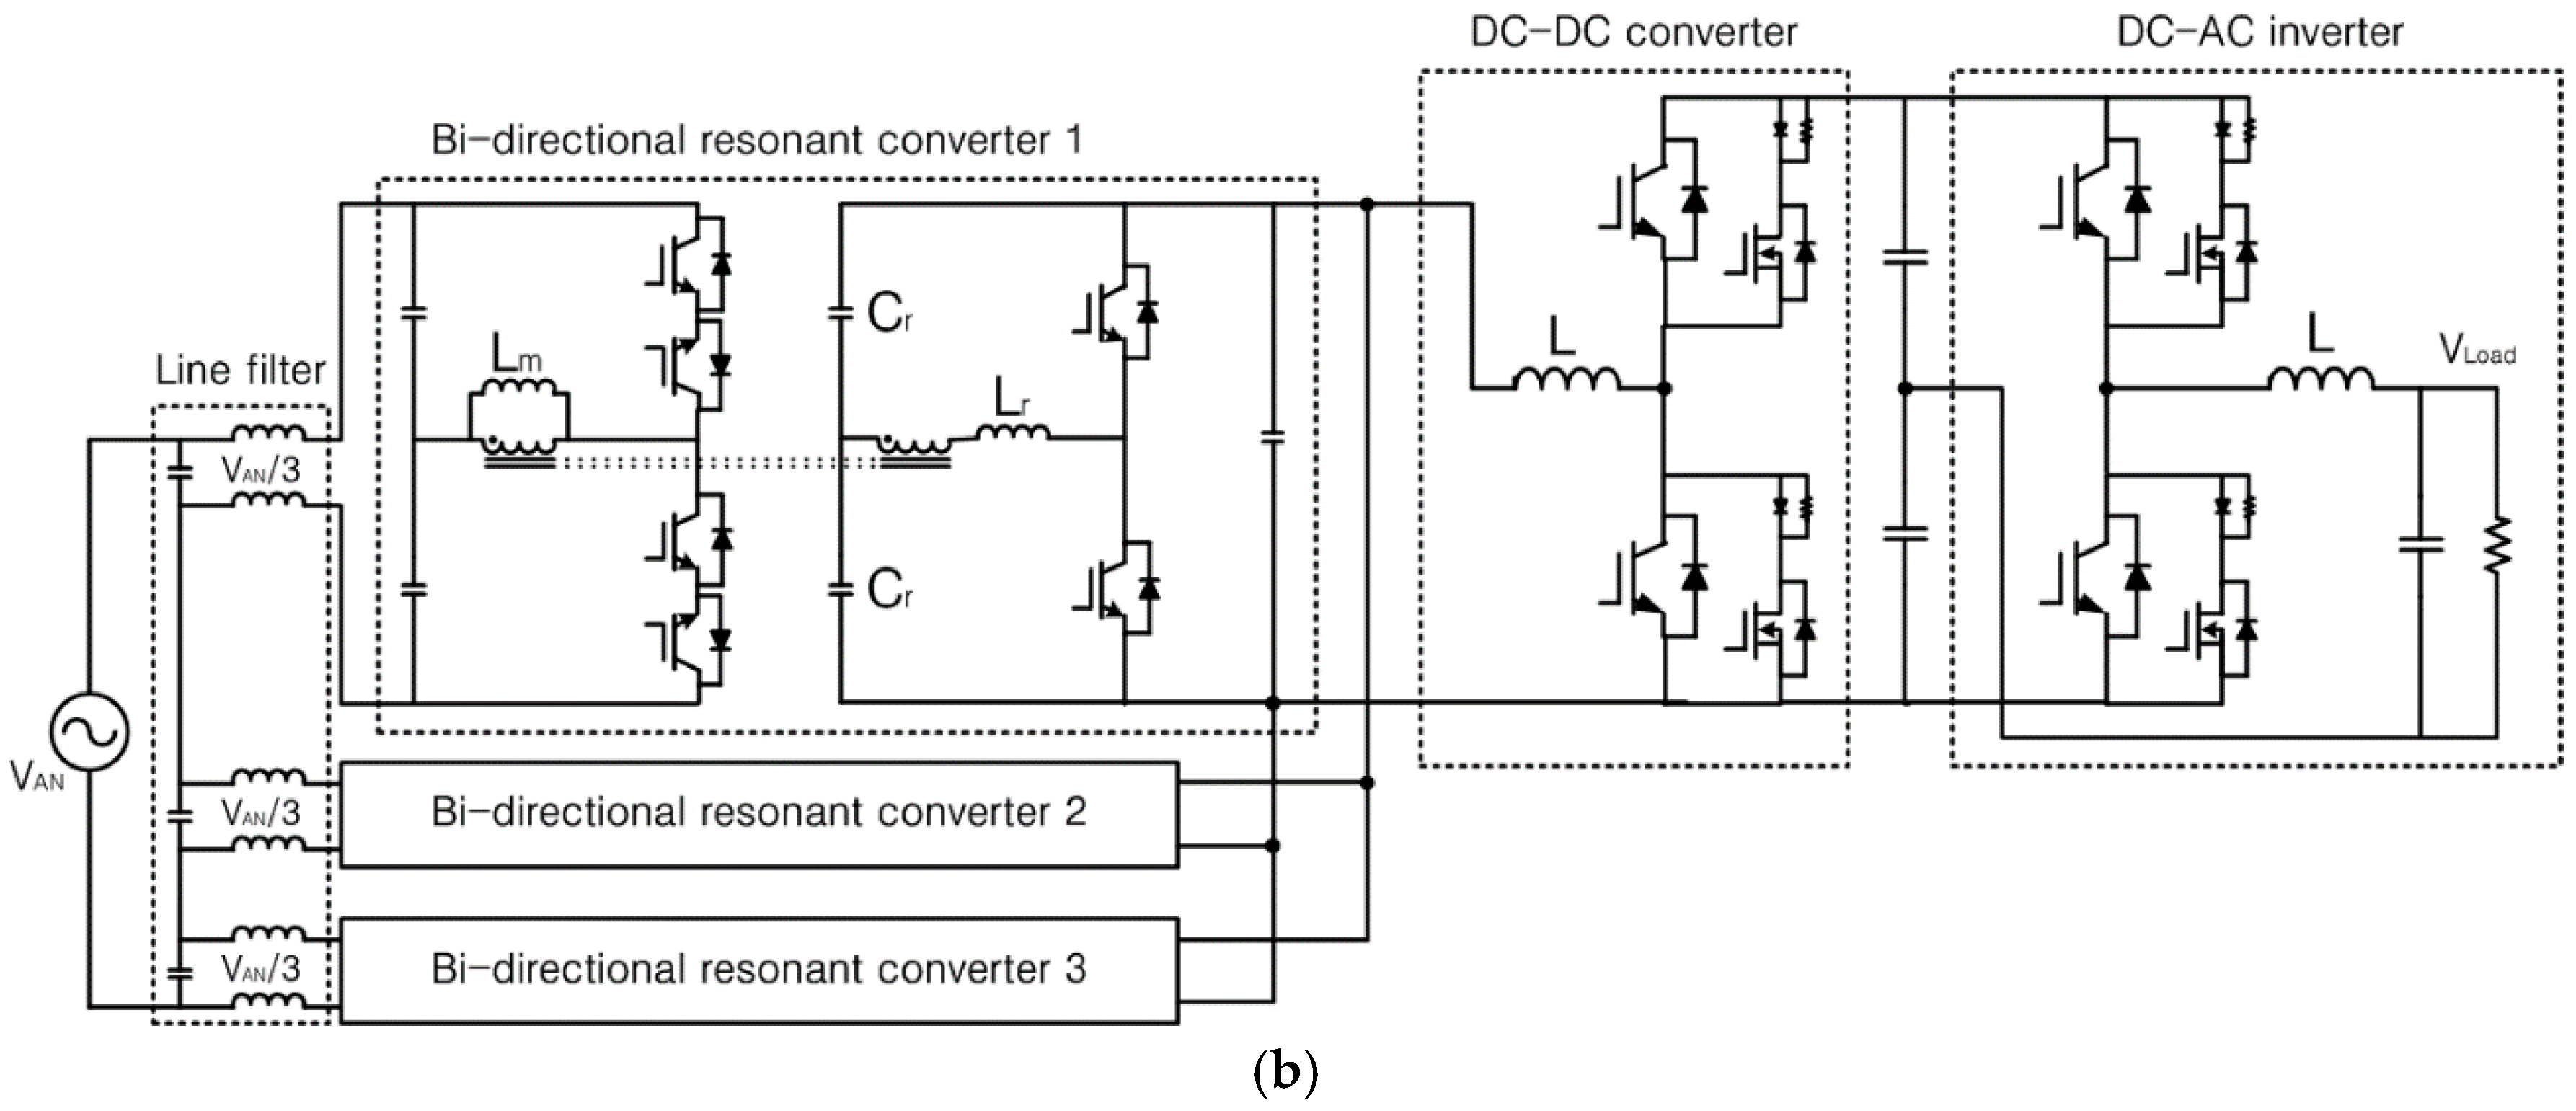 Boliviaaywc Ac To Dc Converter Schematic - Board Wiring Diagrams